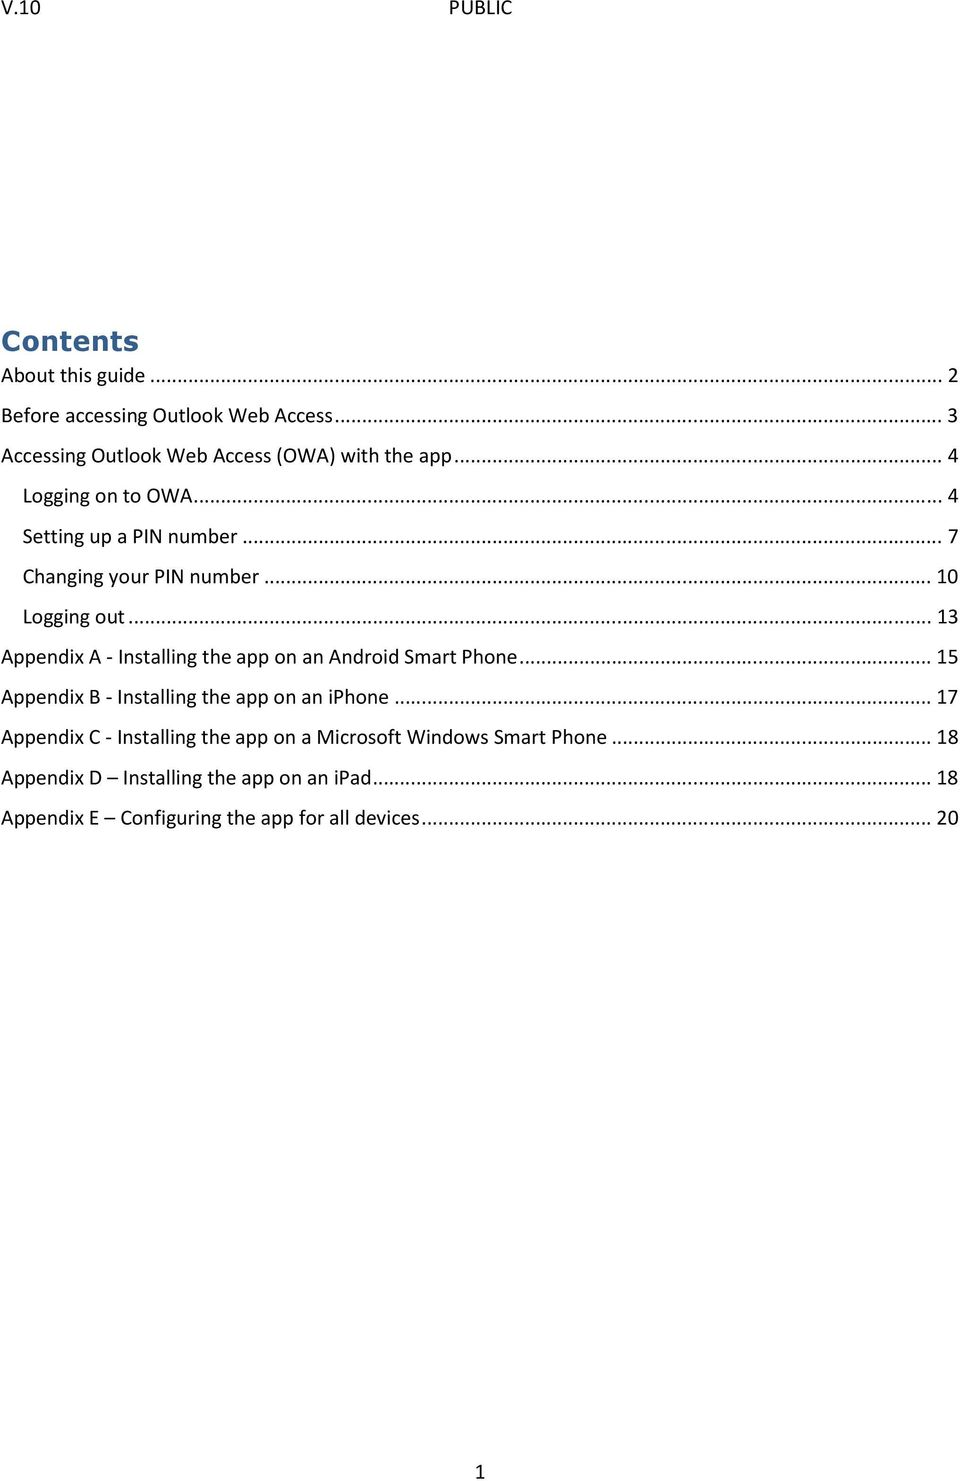 .. 13 Appendix A - Installing the app on an Android Smart Phone... 15 Appendix B - Installing the app on an iphone.